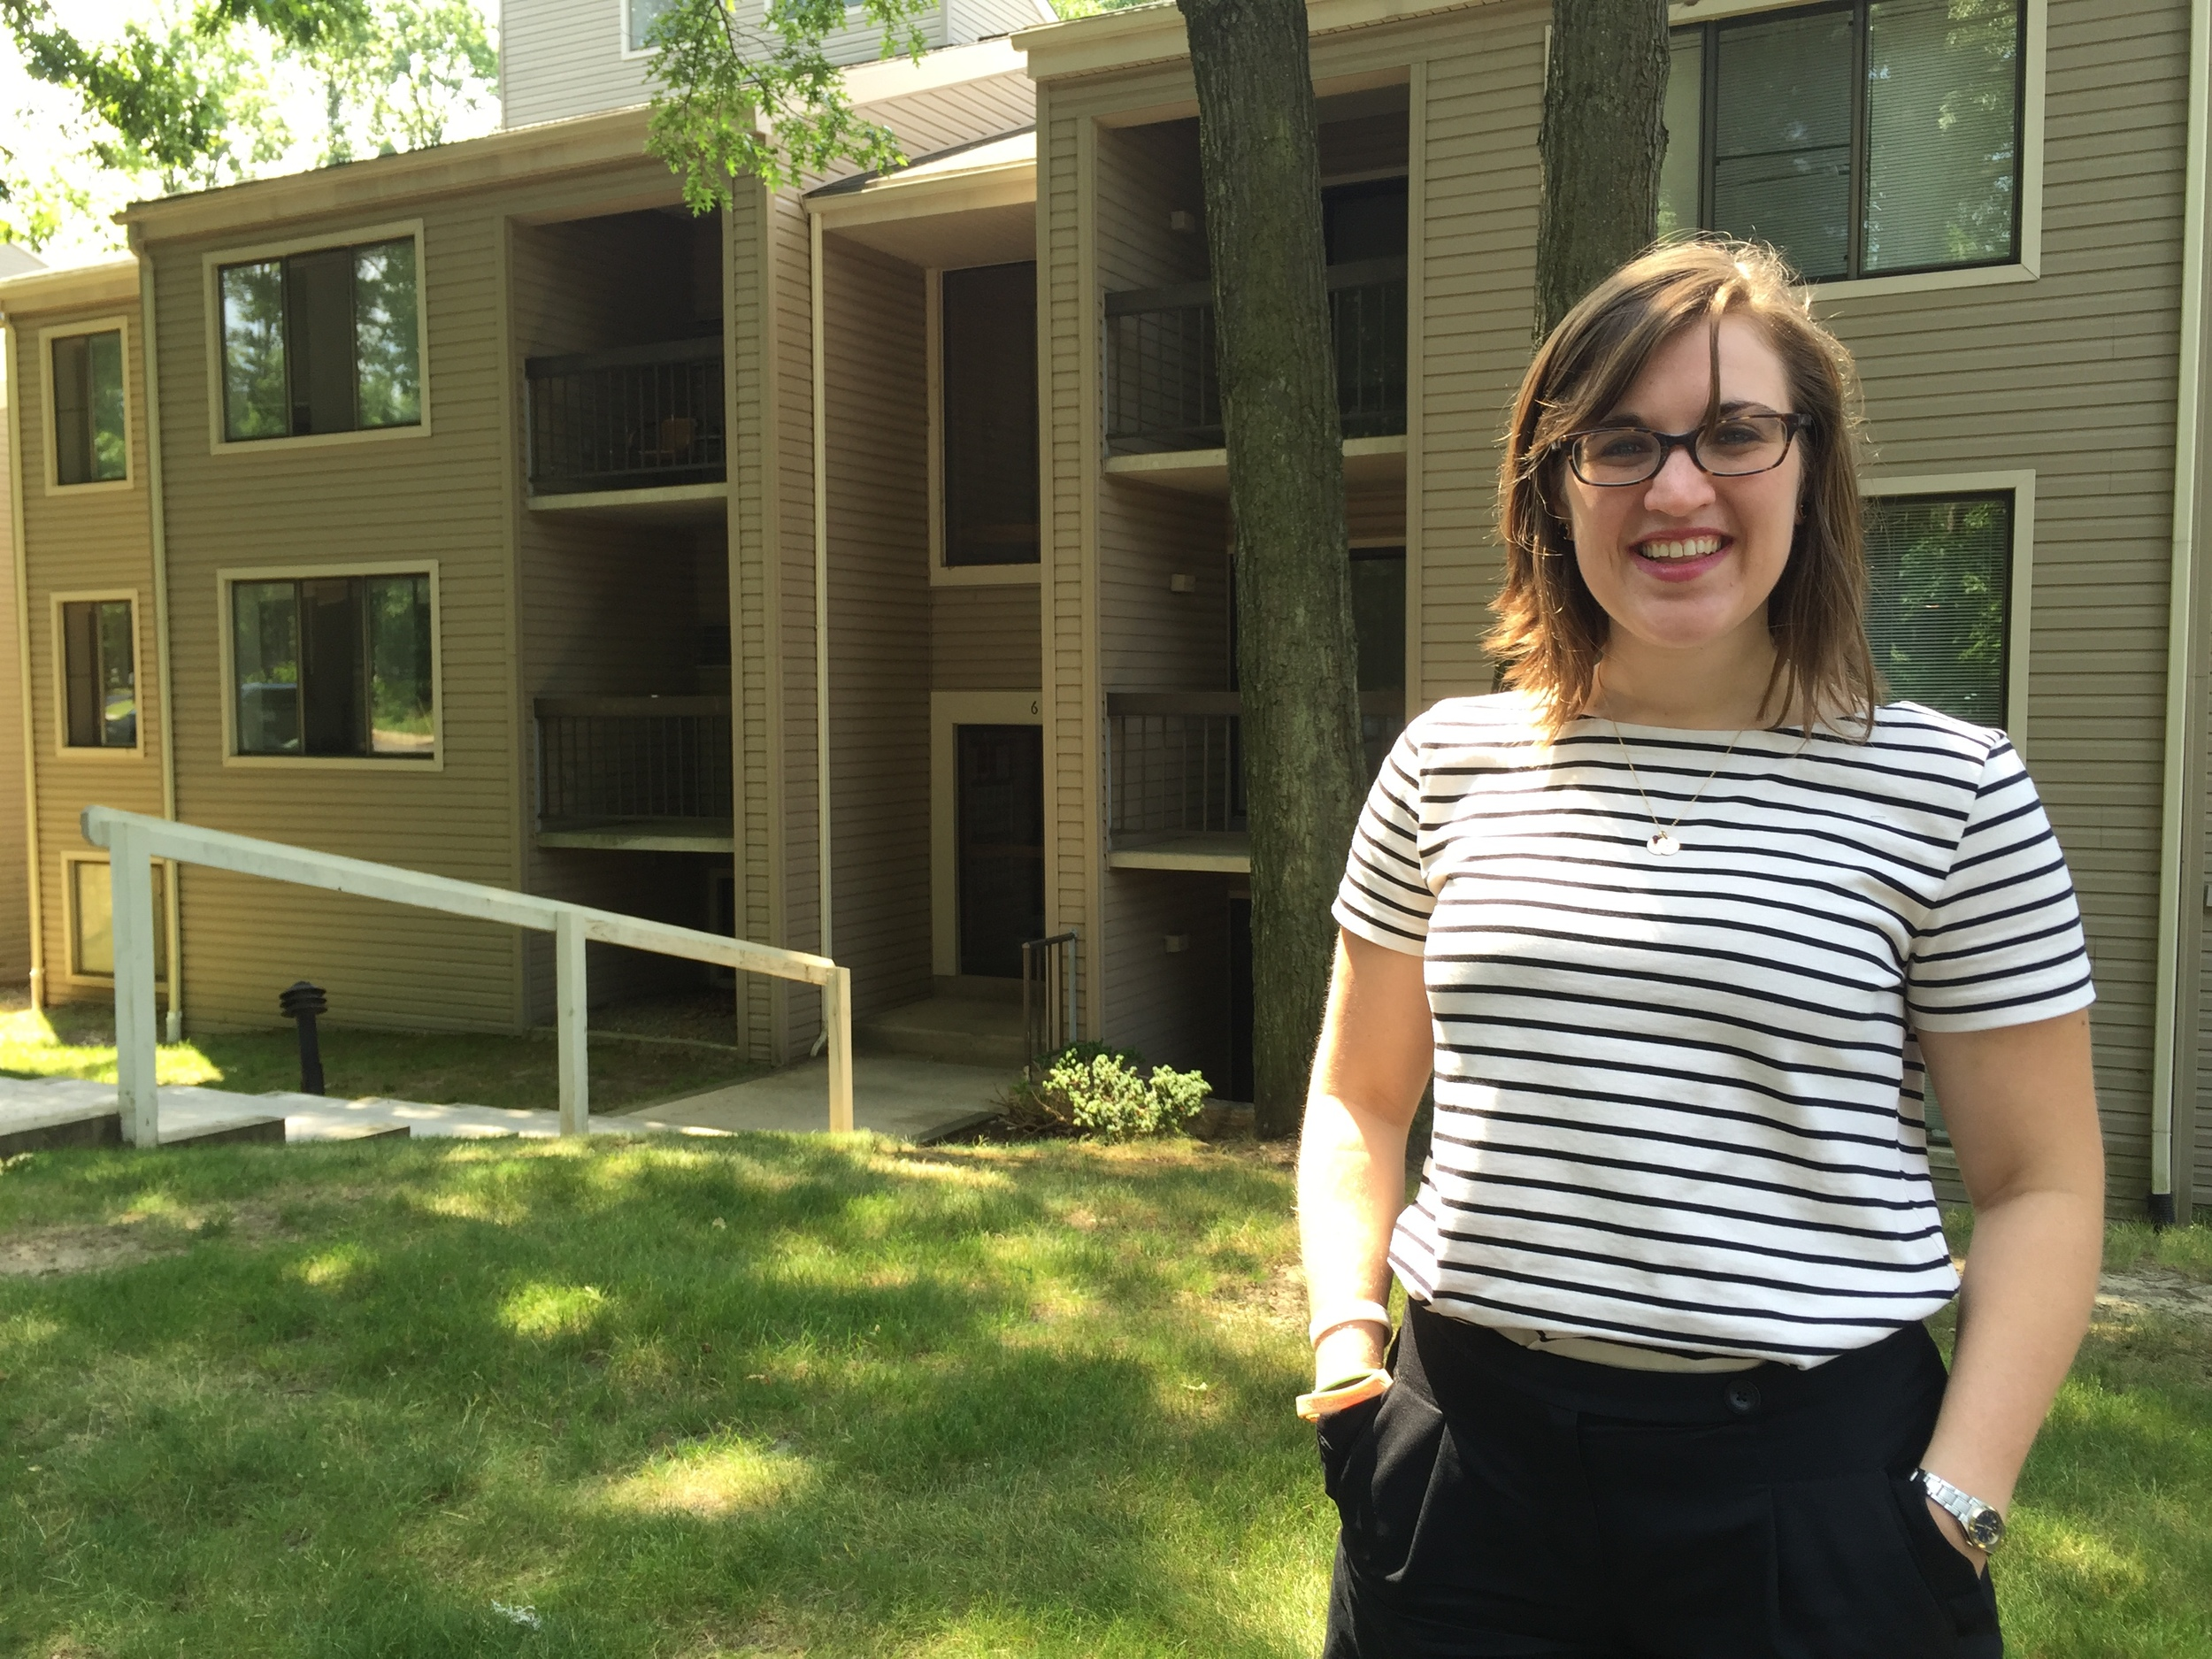 Hailley in front of her new apartment building